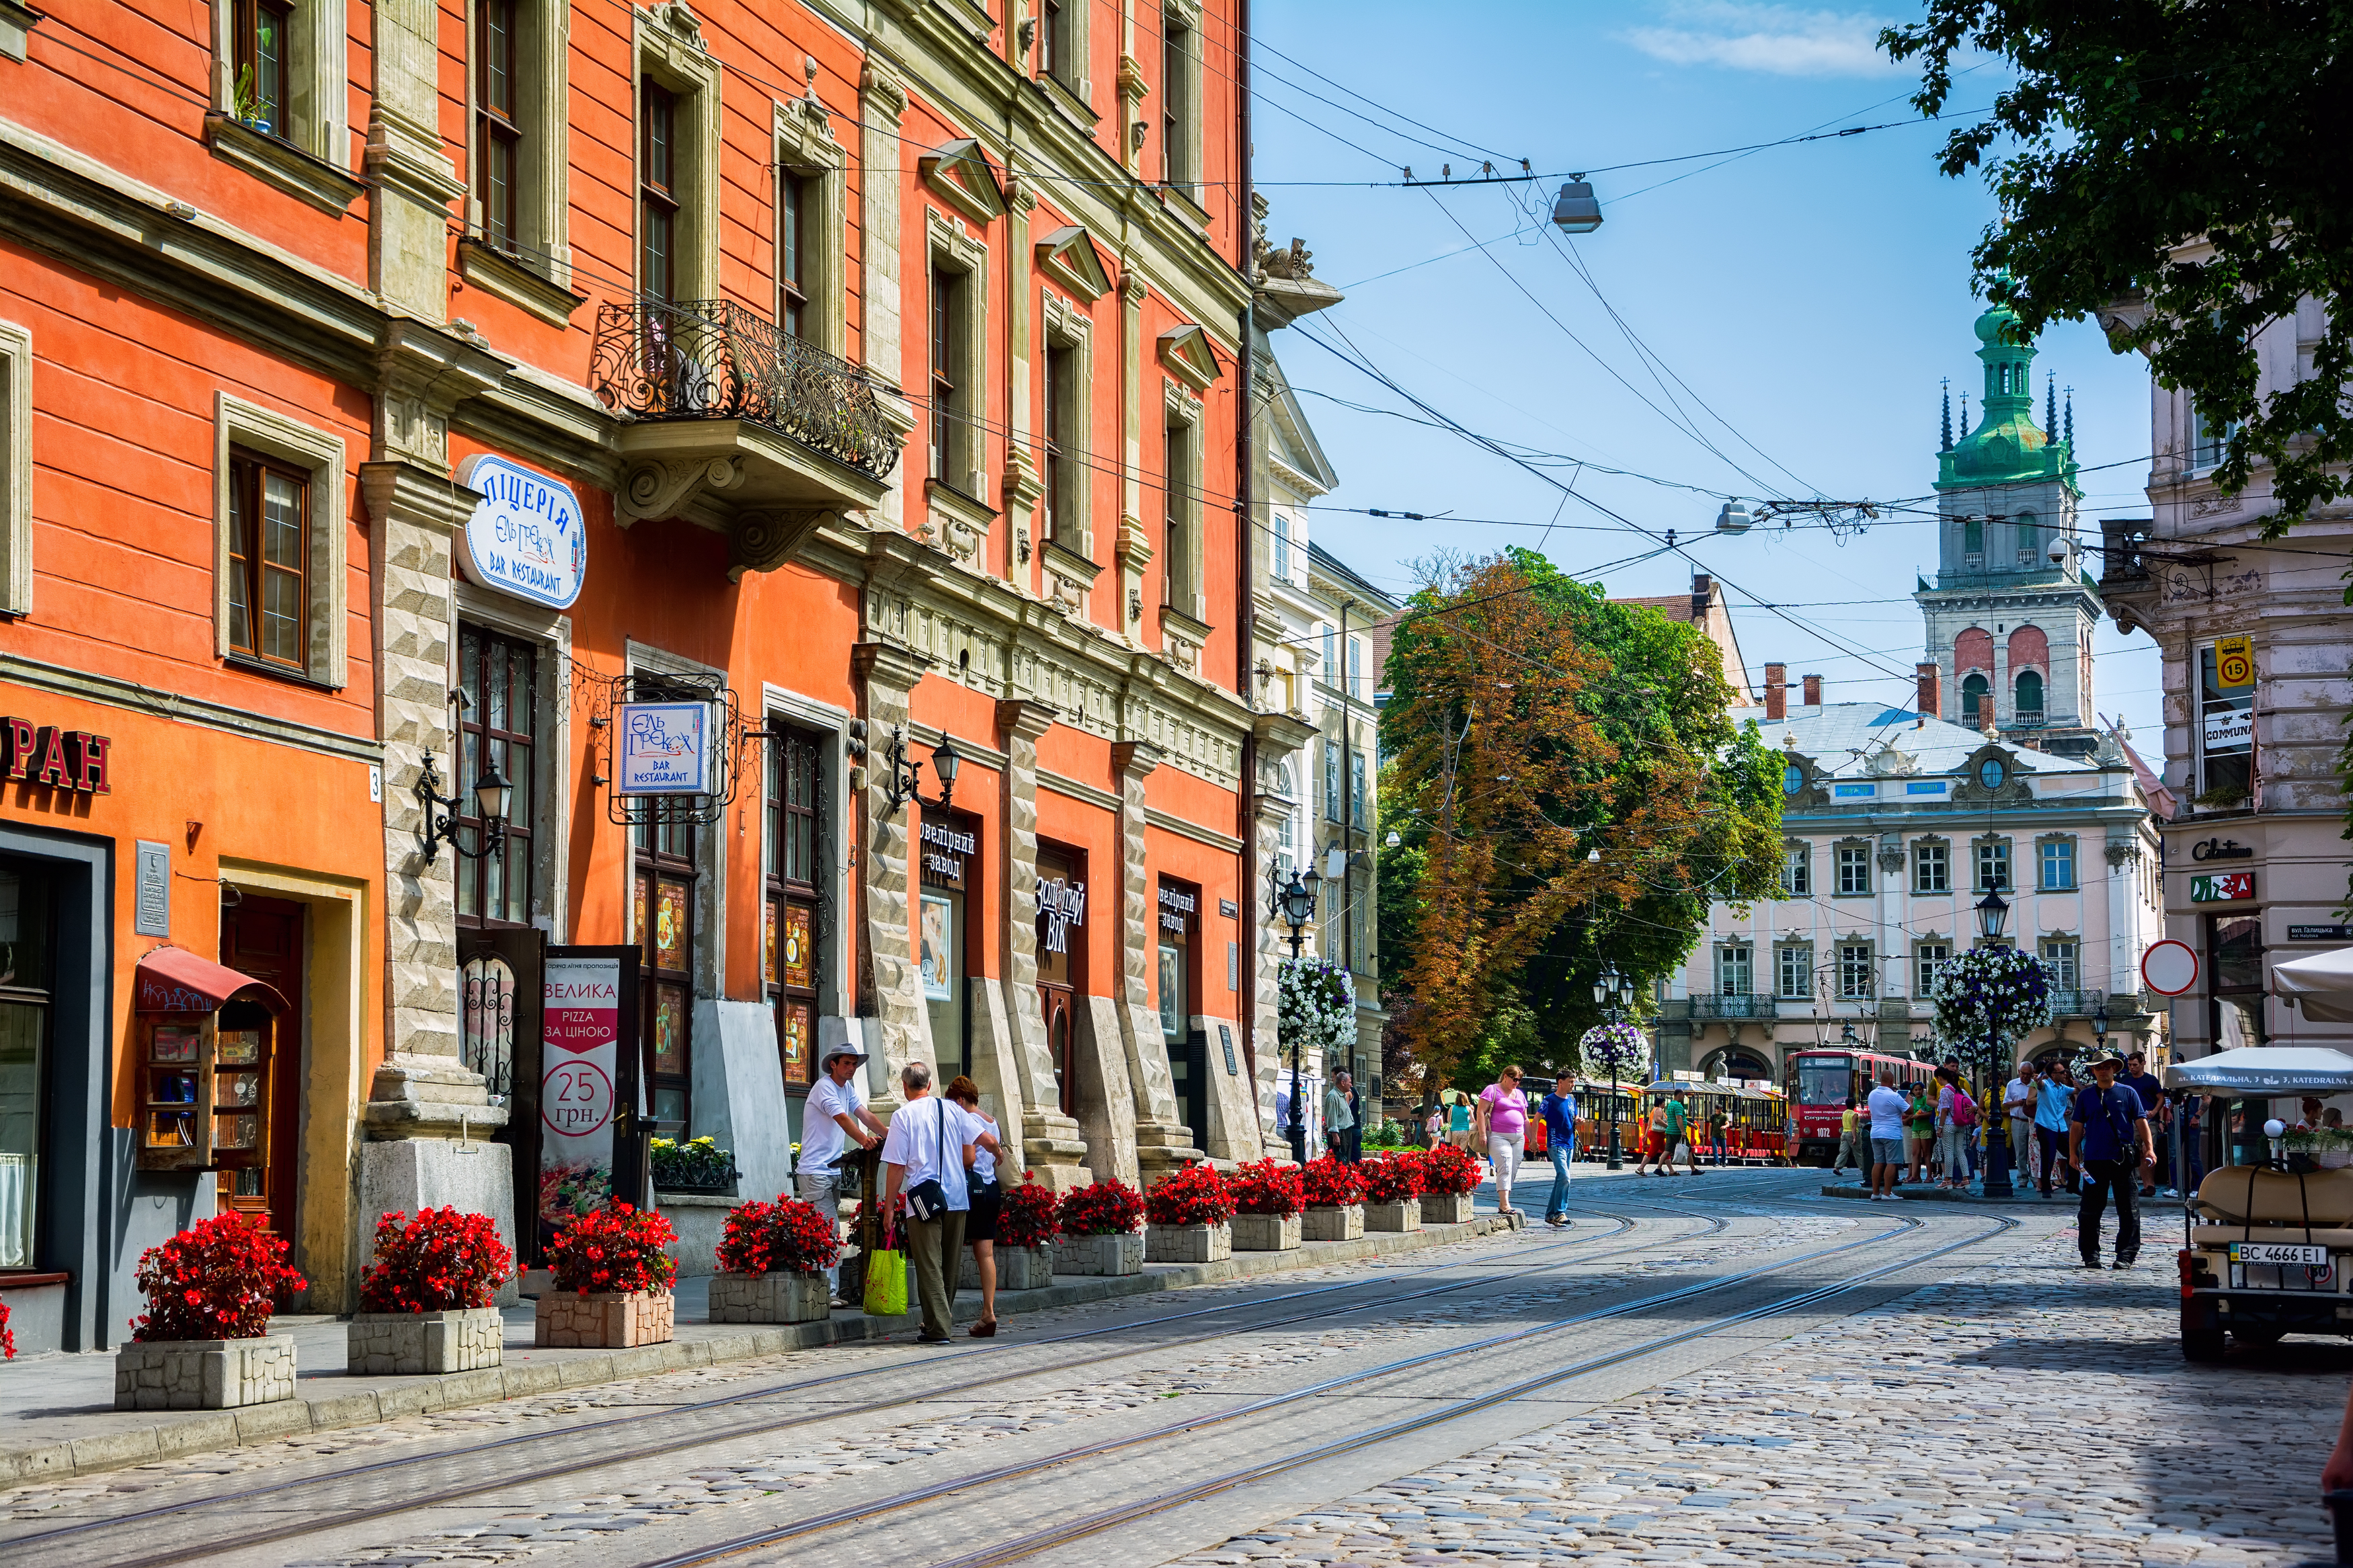 Lviv Ukraine - August 3 2015: Lviv city center. Cathedral and Market square at August 3 2015. Historical old city landscape.